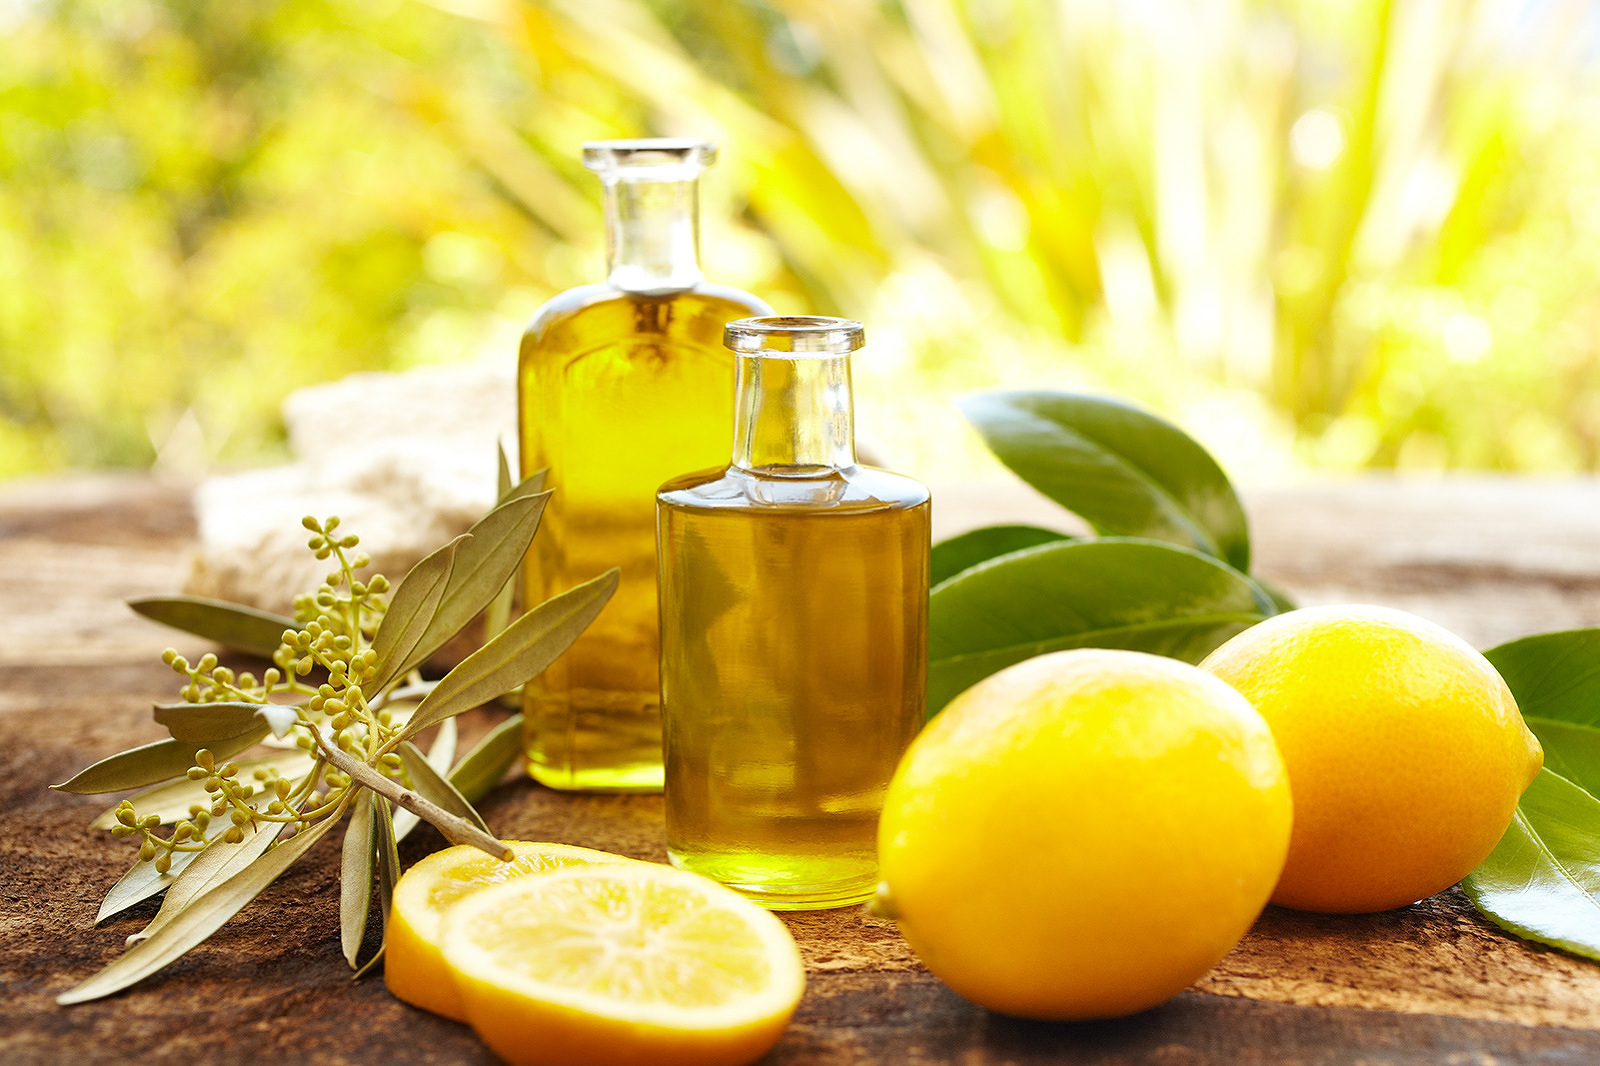 Lemon massage oils  | Dovis Bird Agency Photography